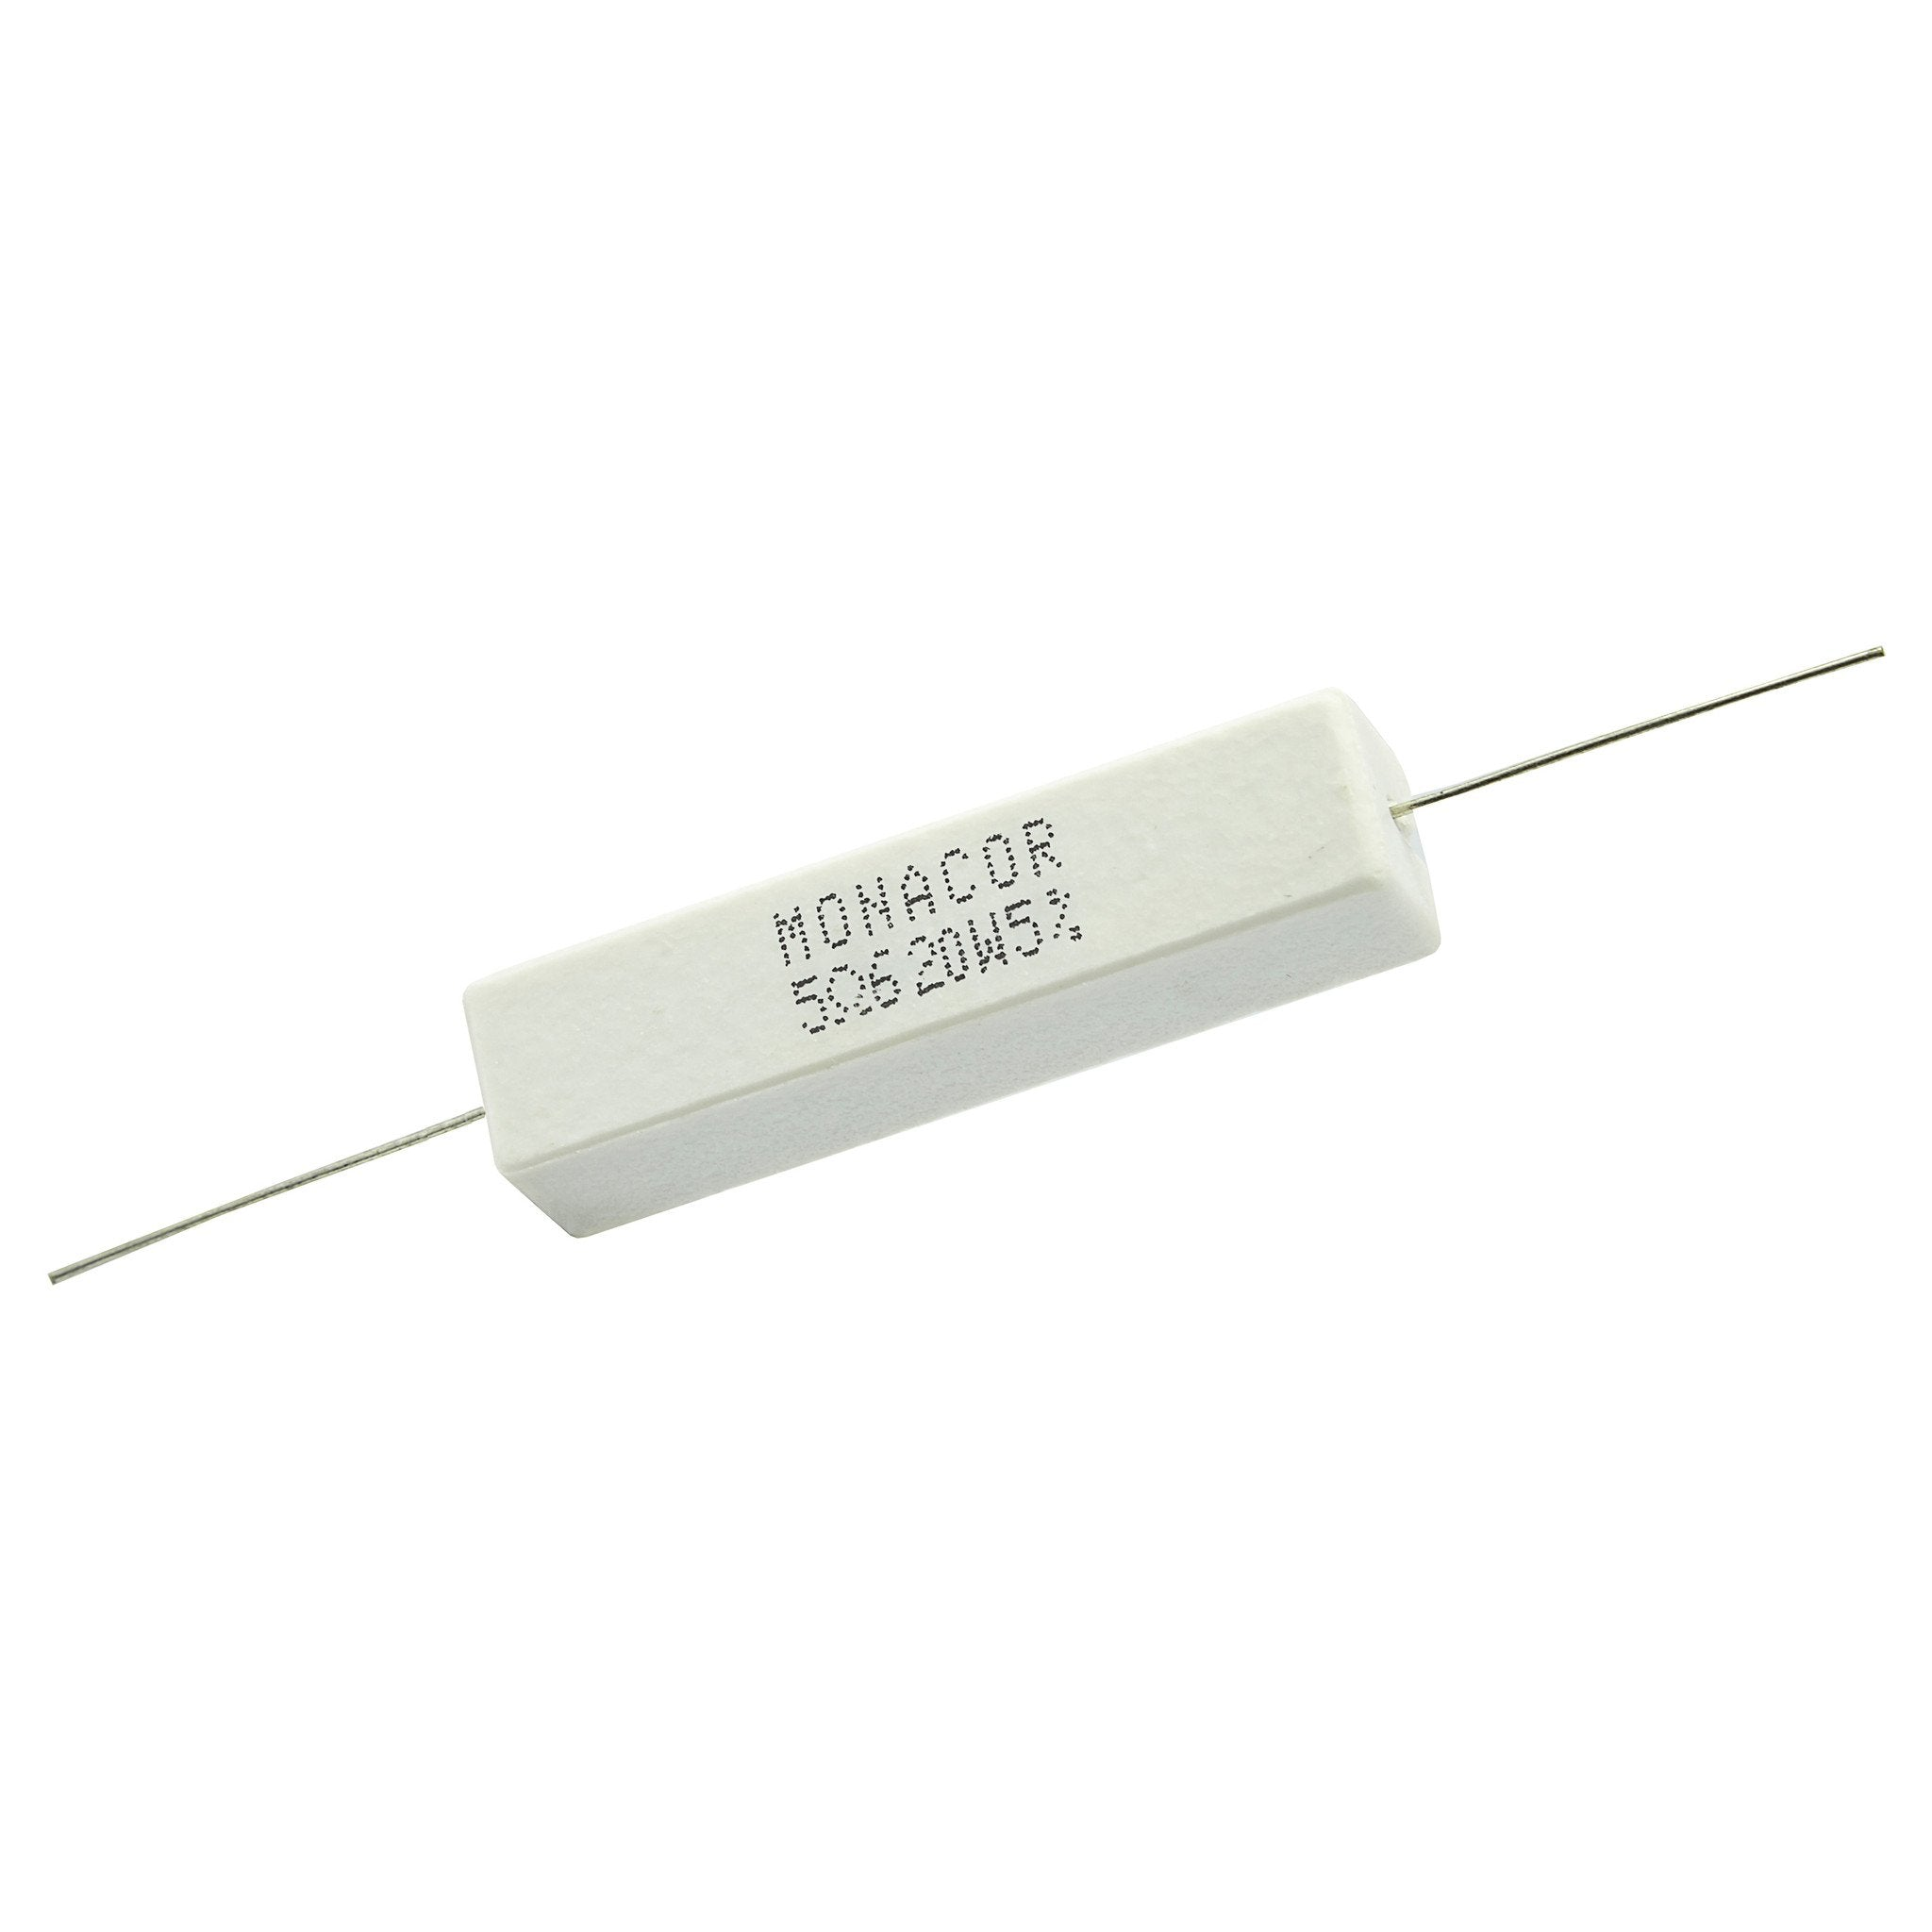 5.6 Ohm 20 Watt 5% Ceramic Wirewound Resistor - Willys-Hifi Ltd